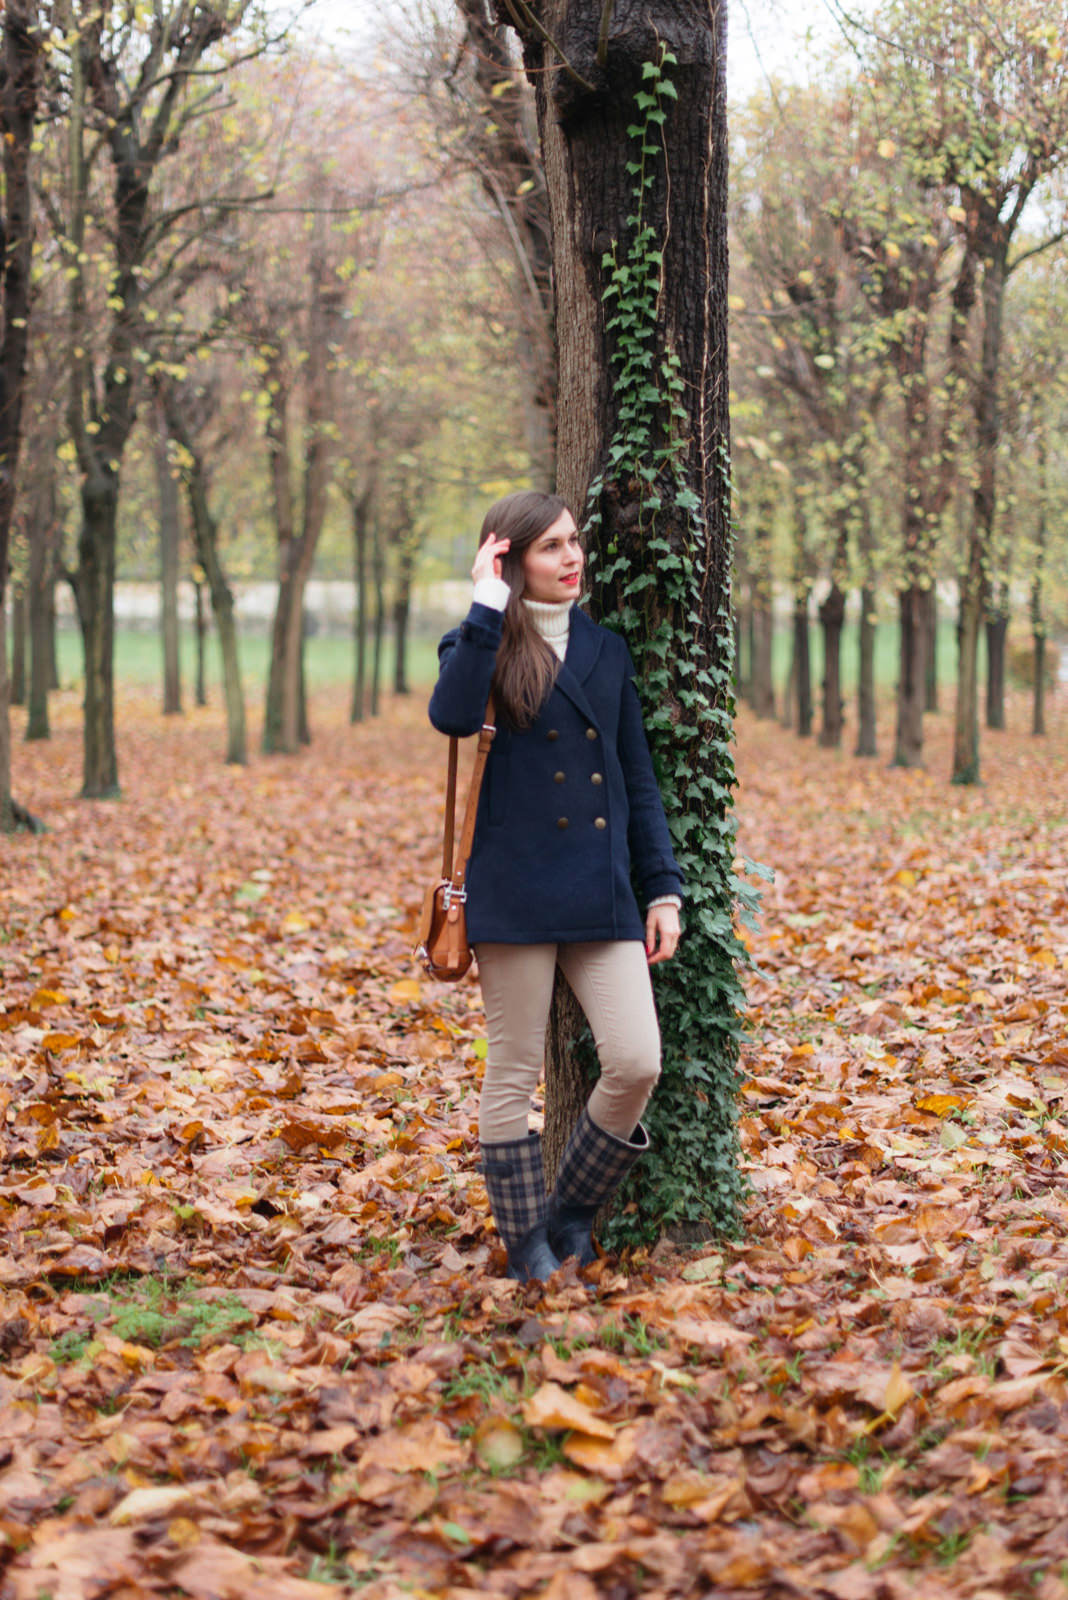 Blog-Mode-And-The-City-Looks-Balade-SAint-Cloud copie